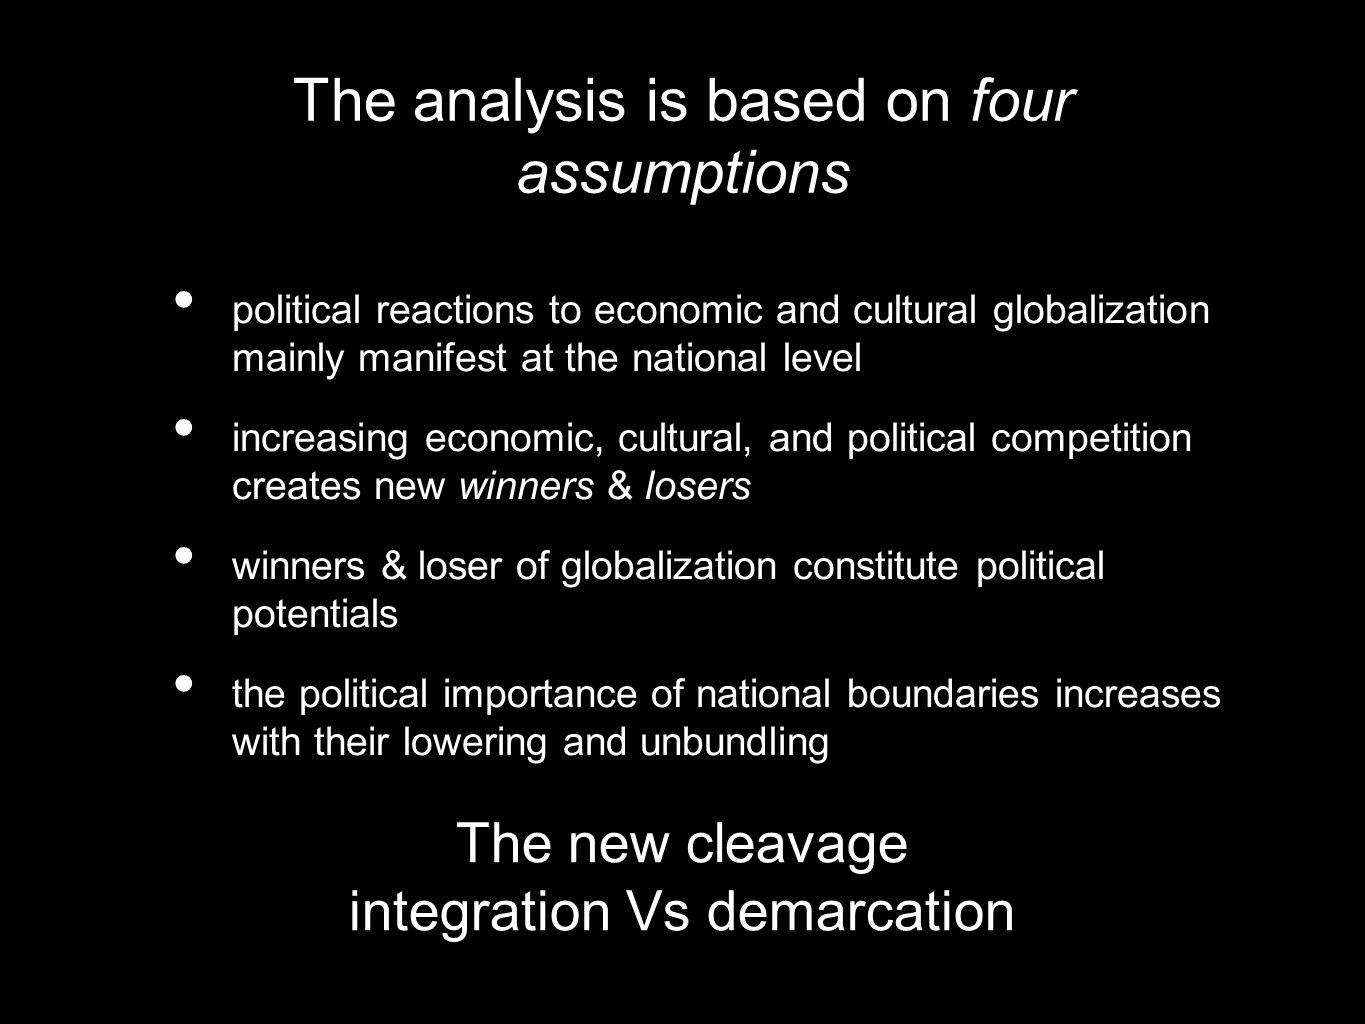 The analysis is based on four assumptions